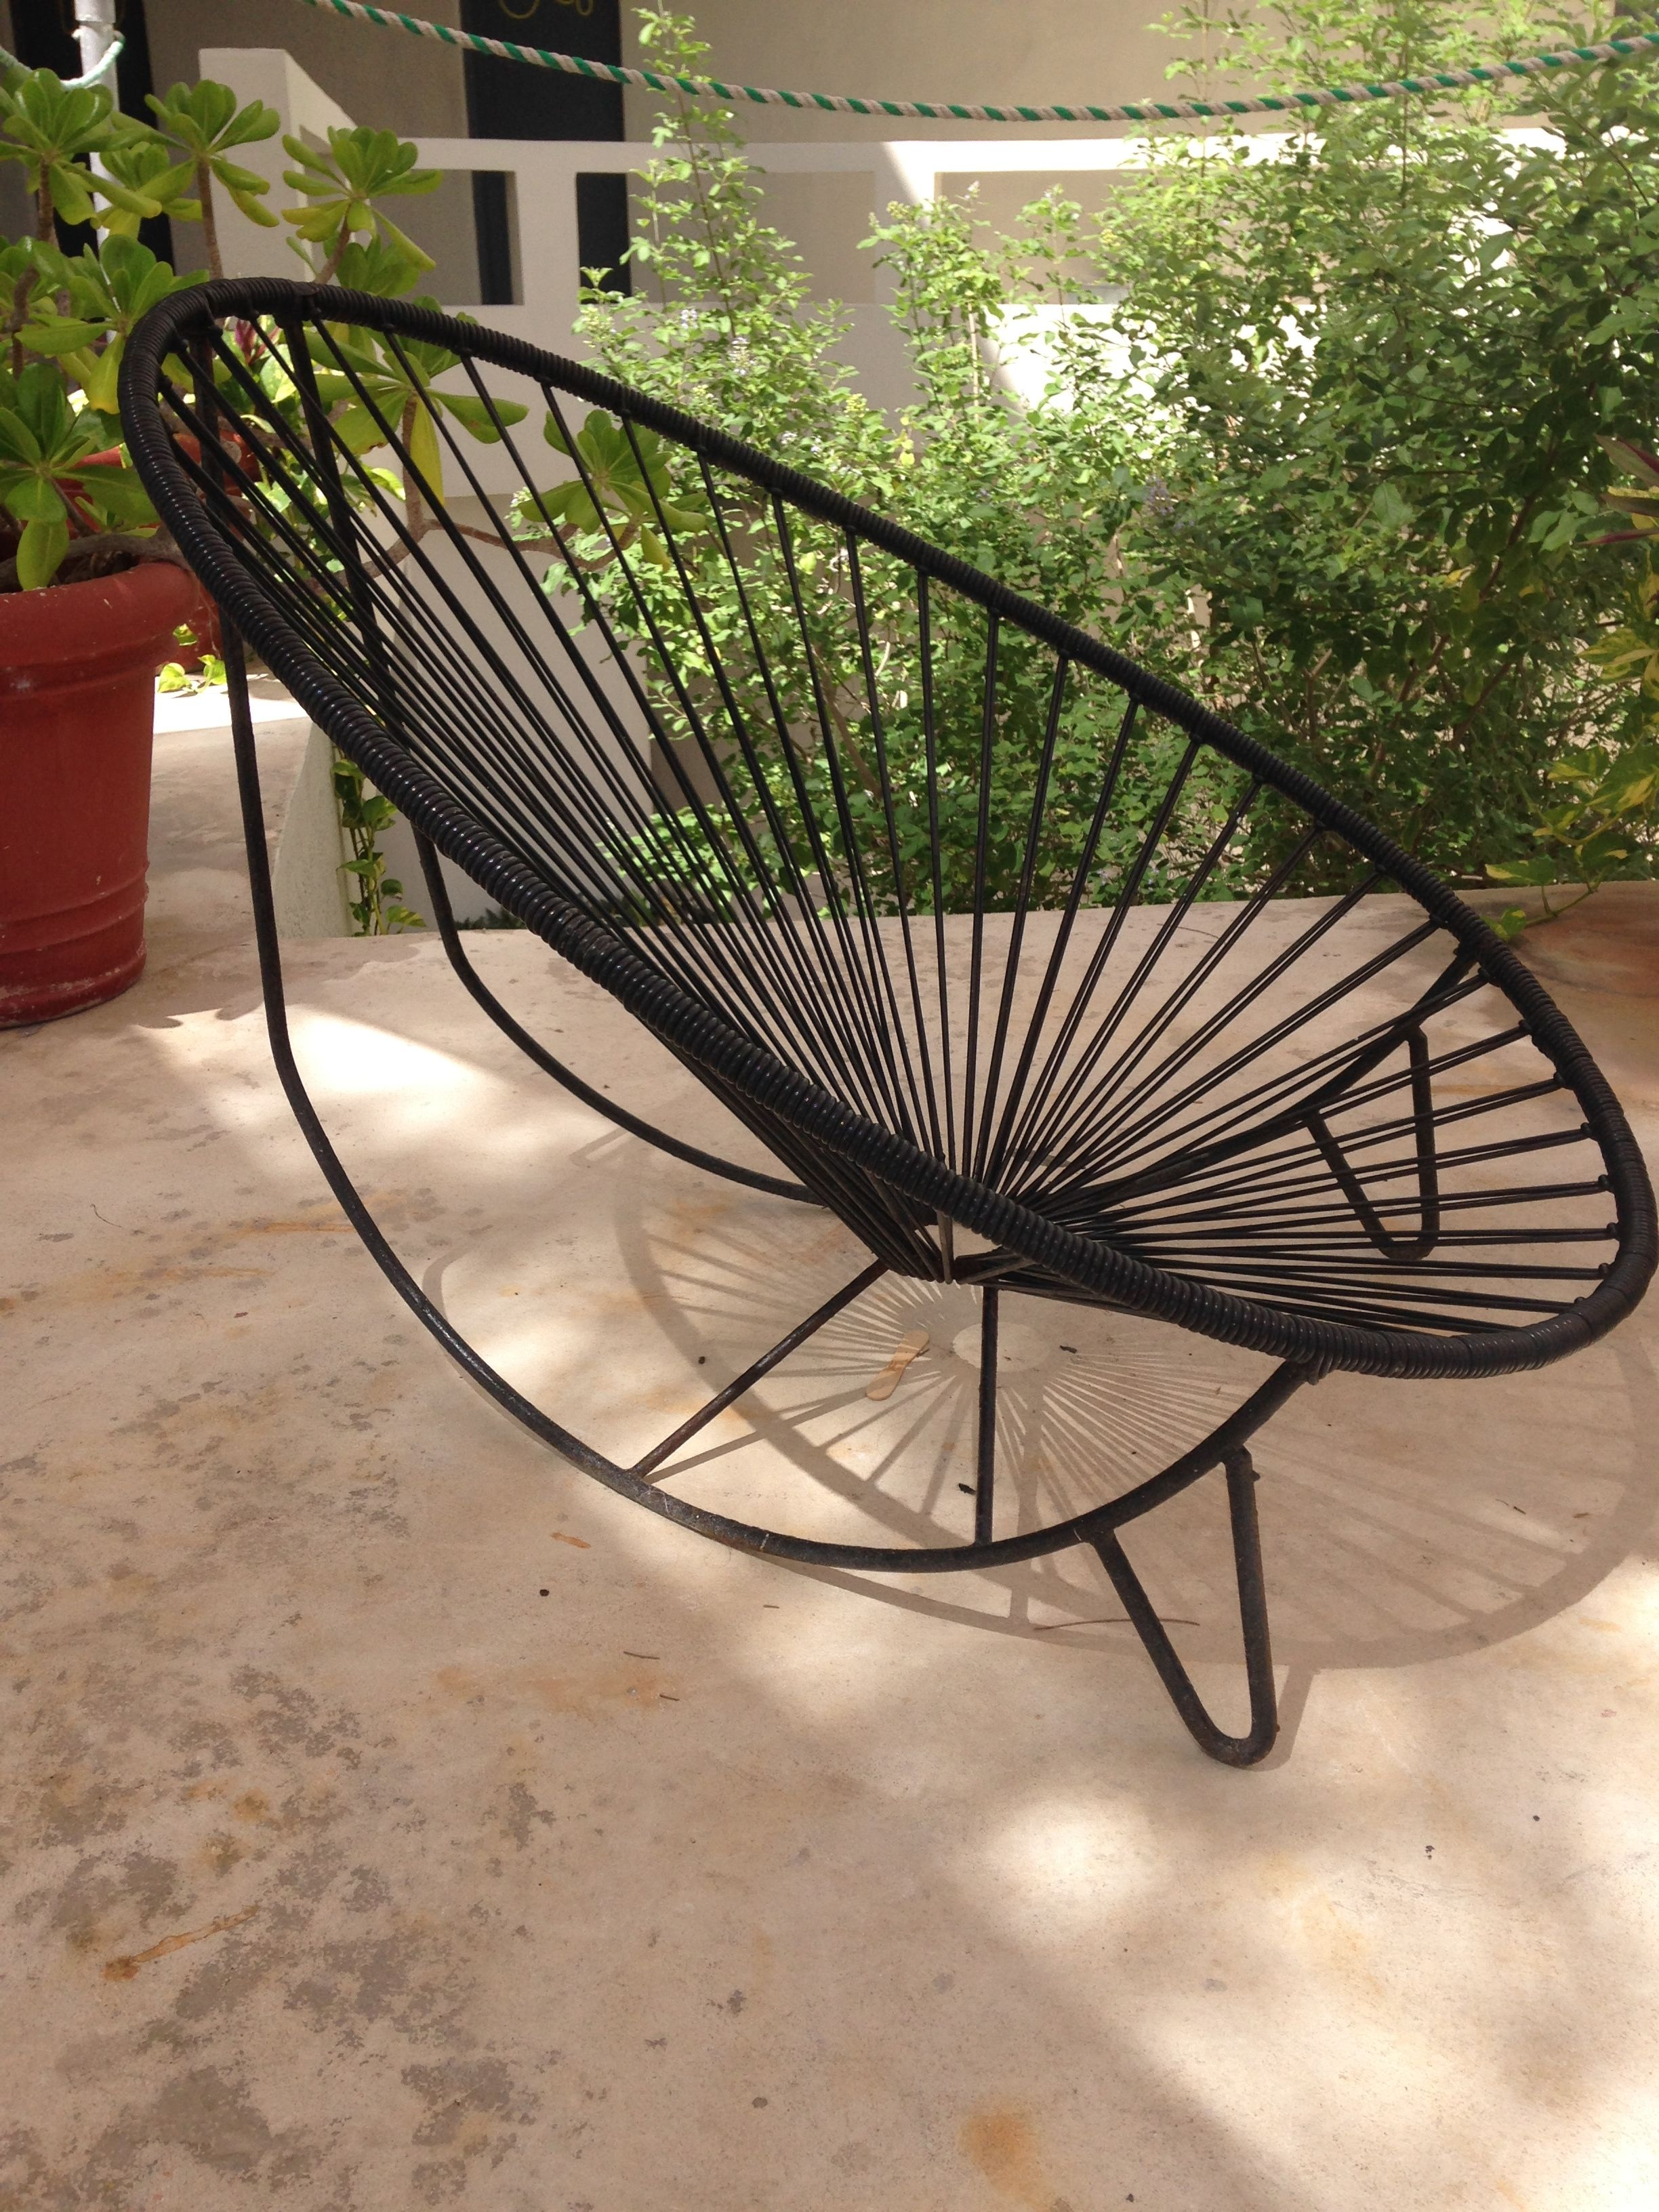 Acapulco Rocking Chair I Photographed In Isla Mujeres Mexico